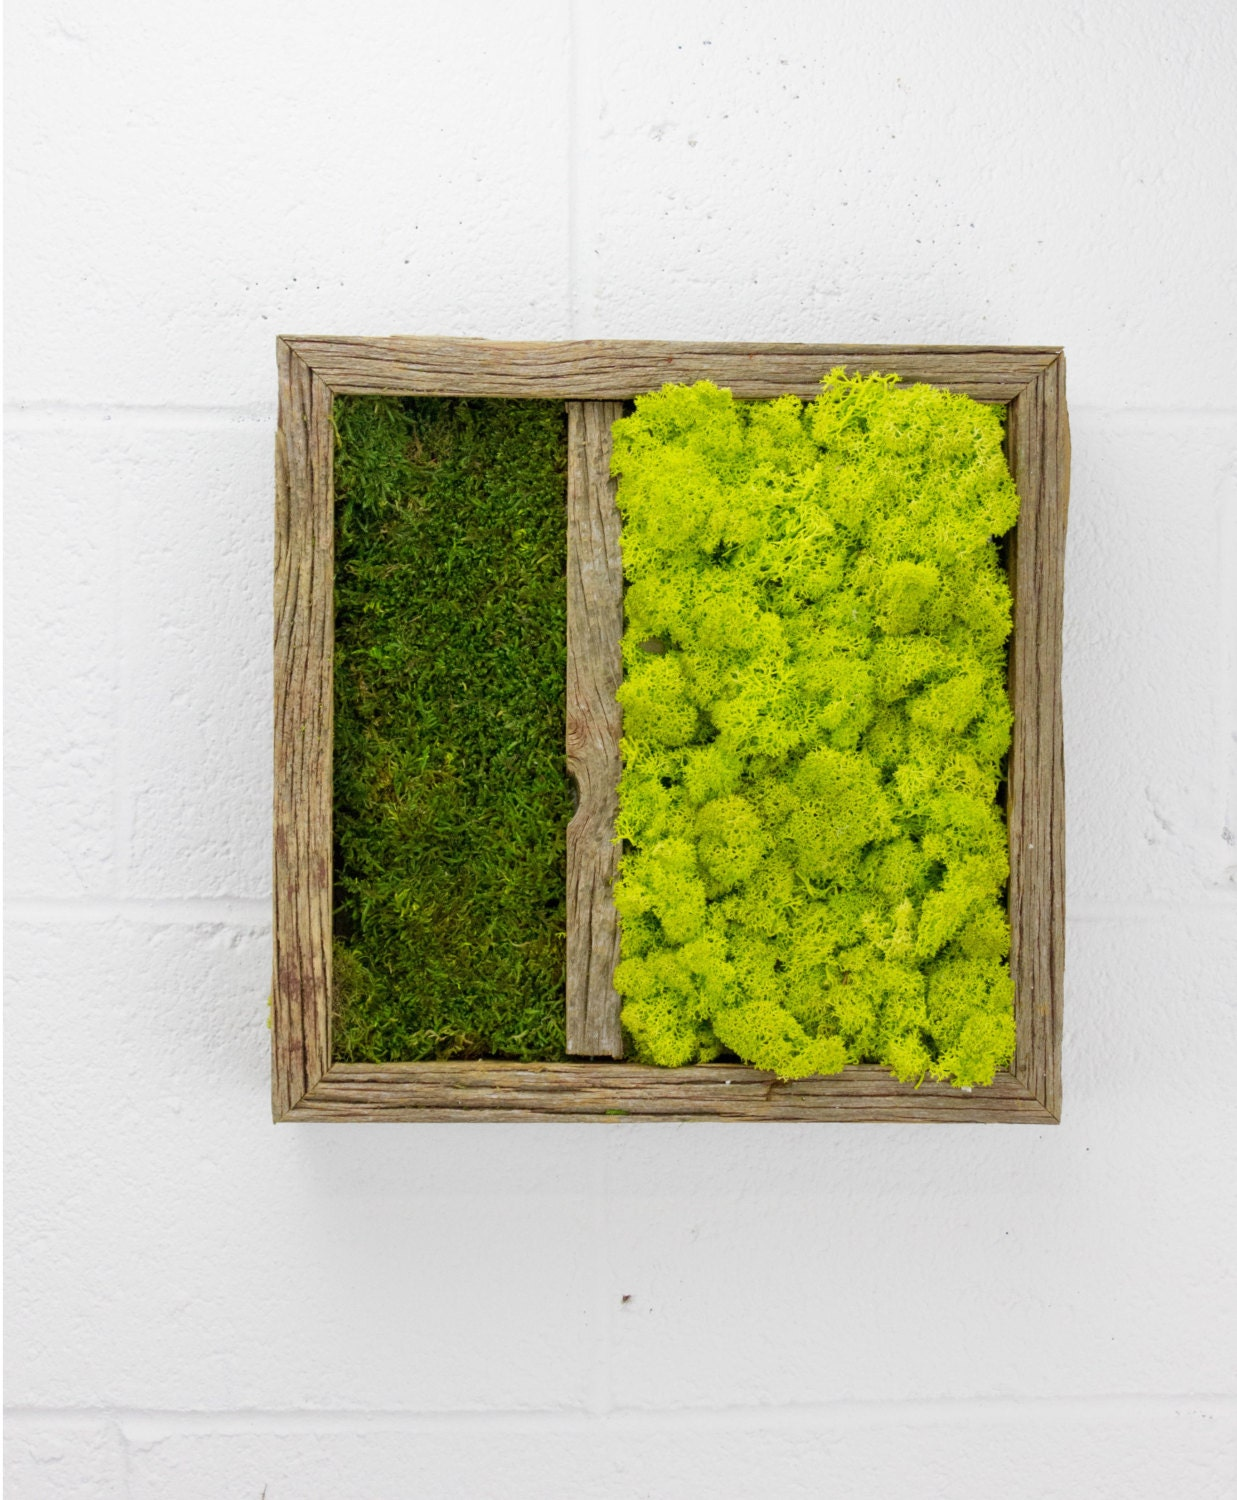 Twinz water free green wall art moss and preserved plants for Green wall art